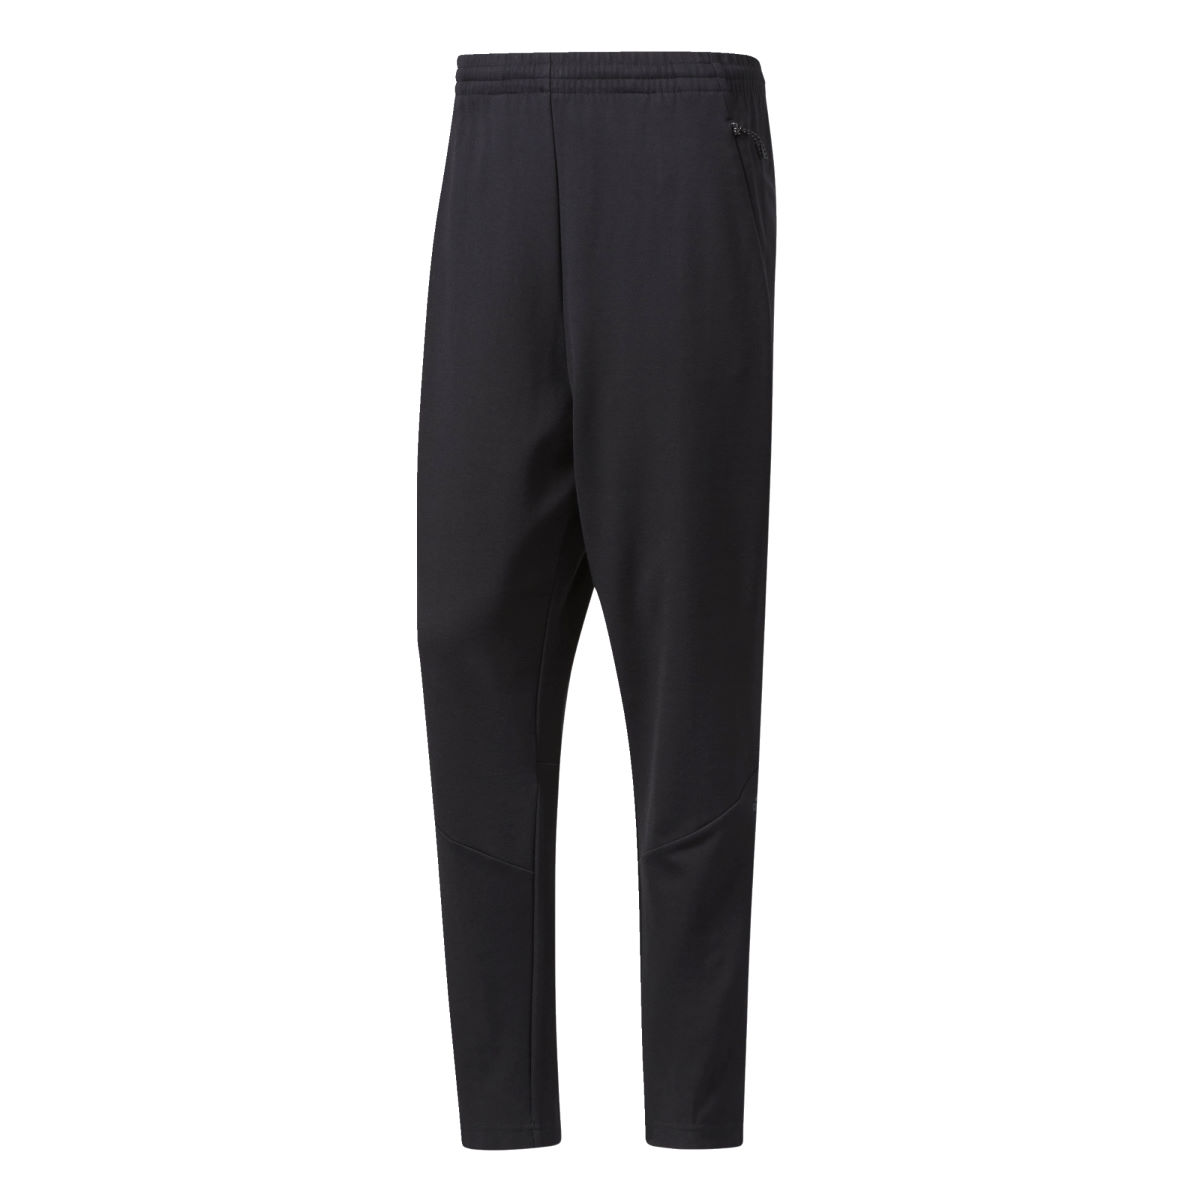 Adidas zne pant aw16 trousers run black aw16 s94810 s